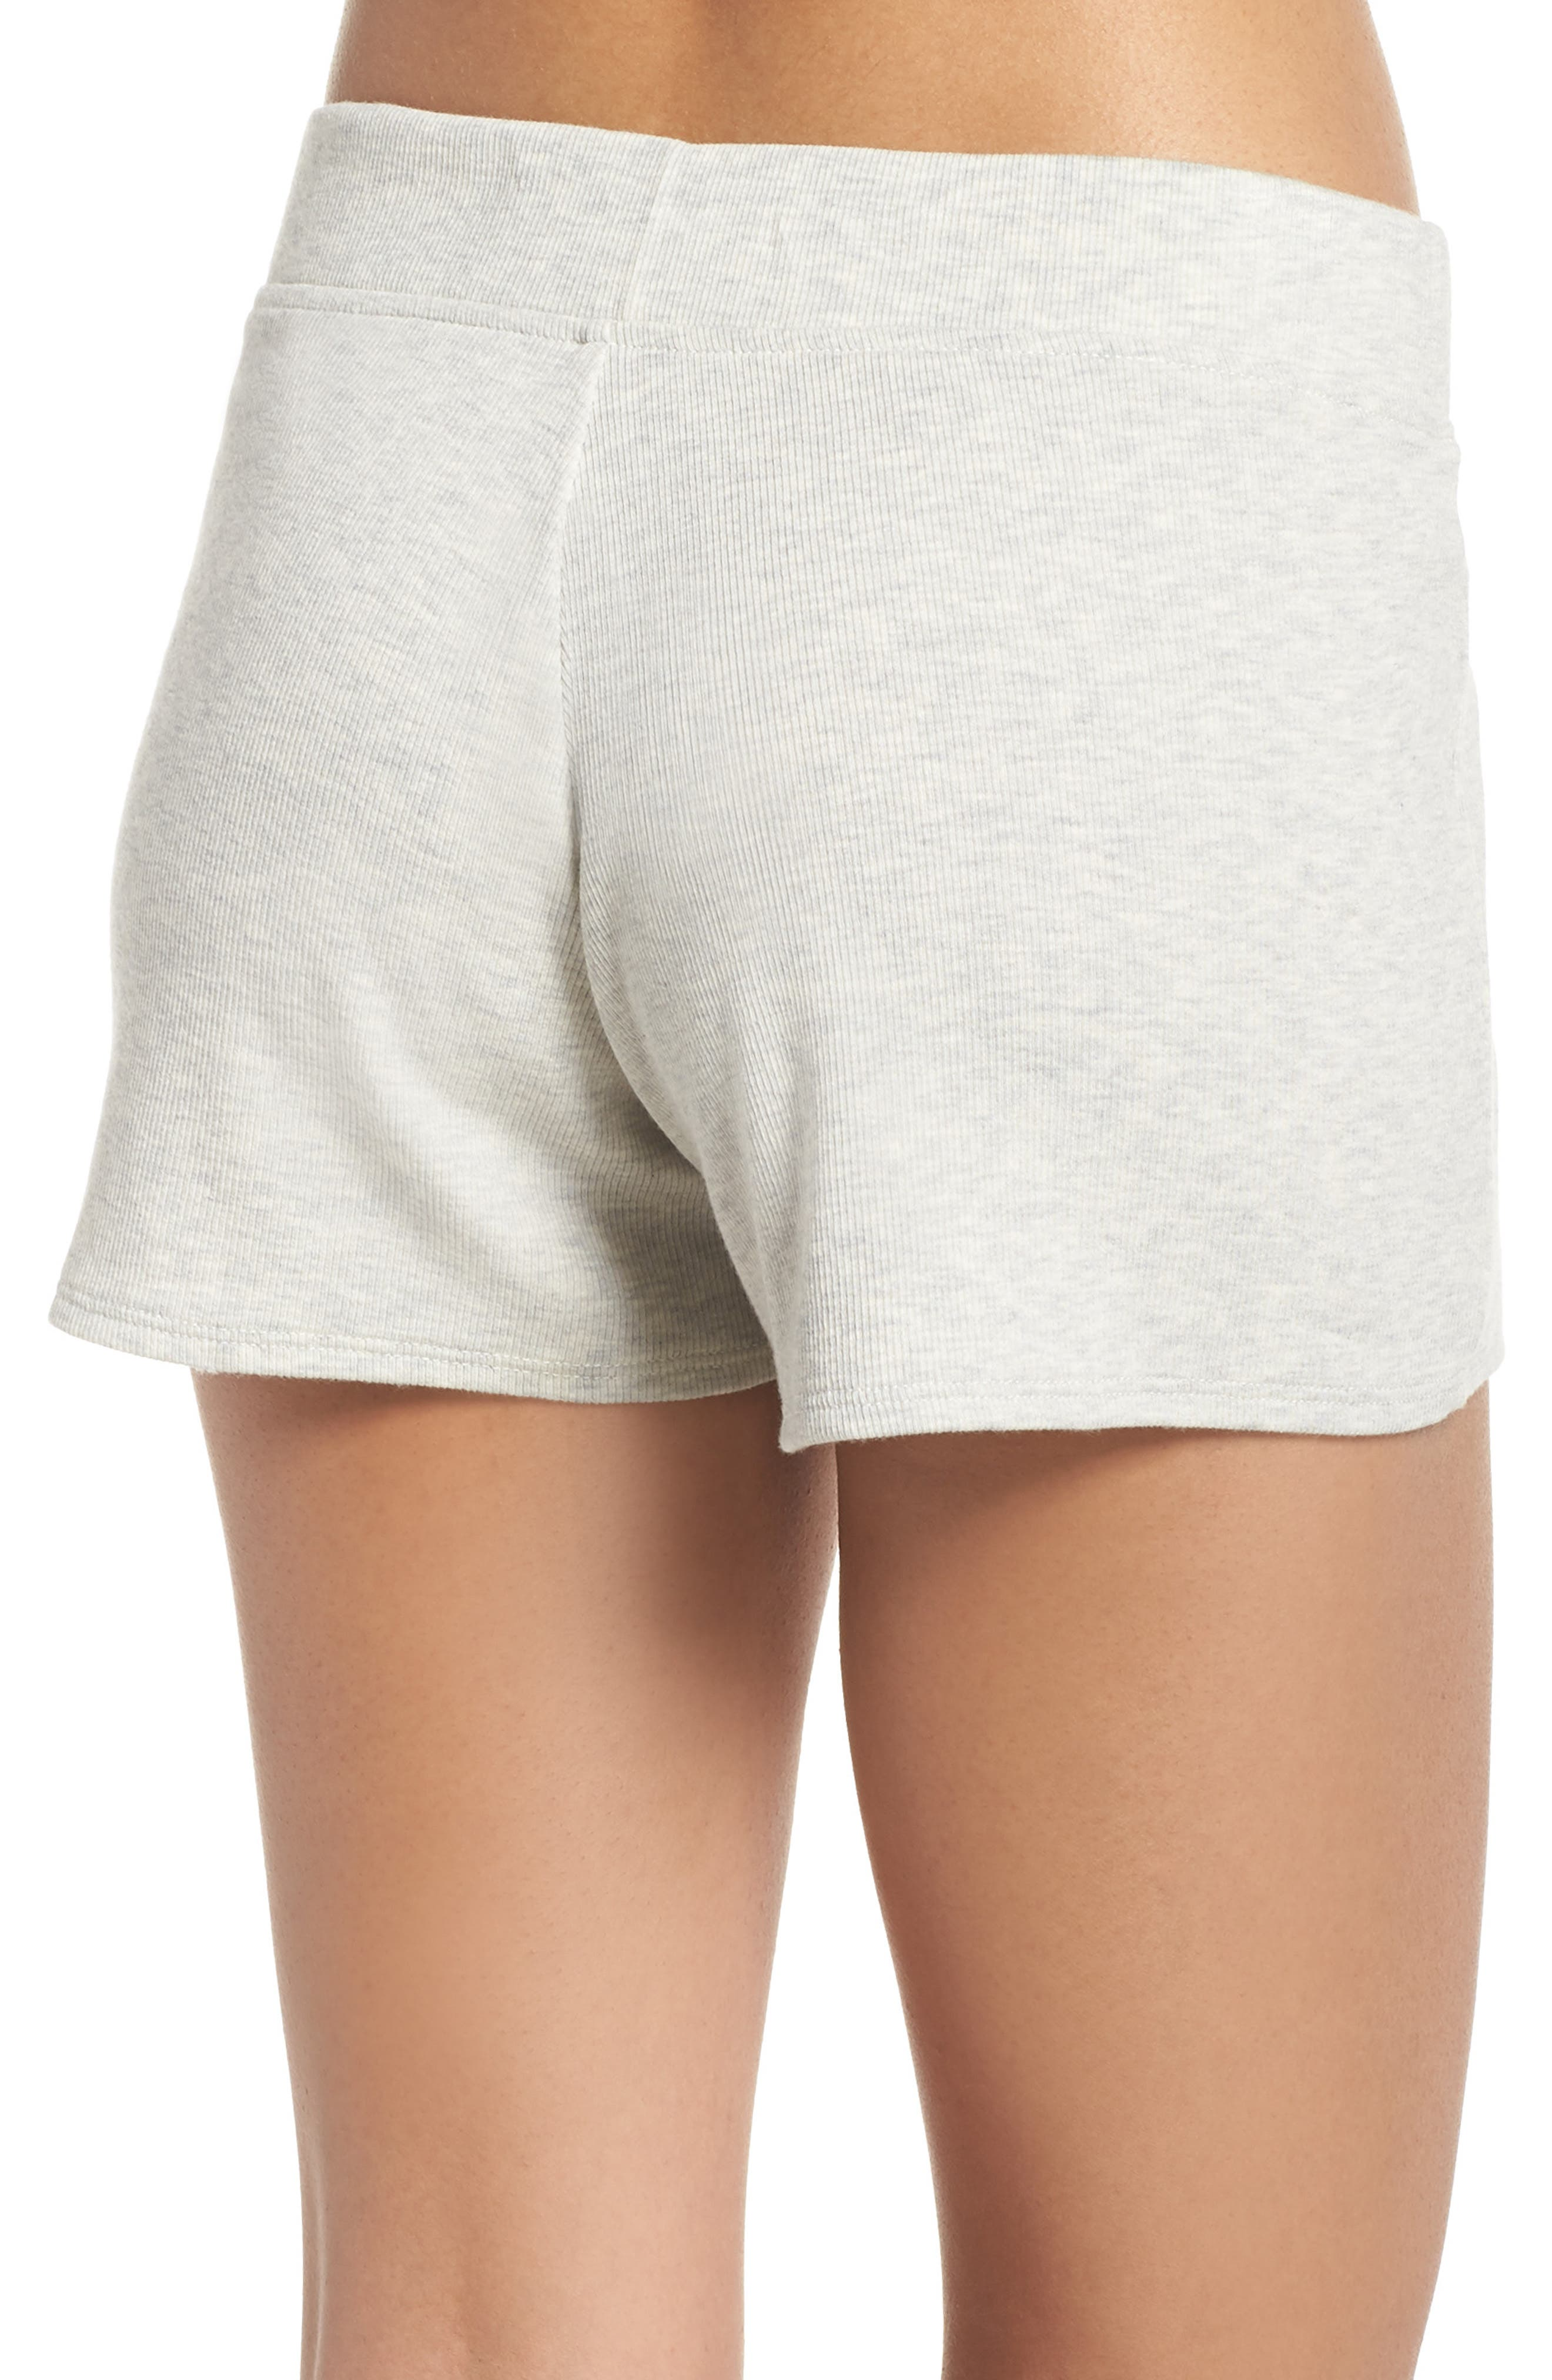 Daydream Lounge Shorts,                             Alternate thumbnail 2, color,                             061